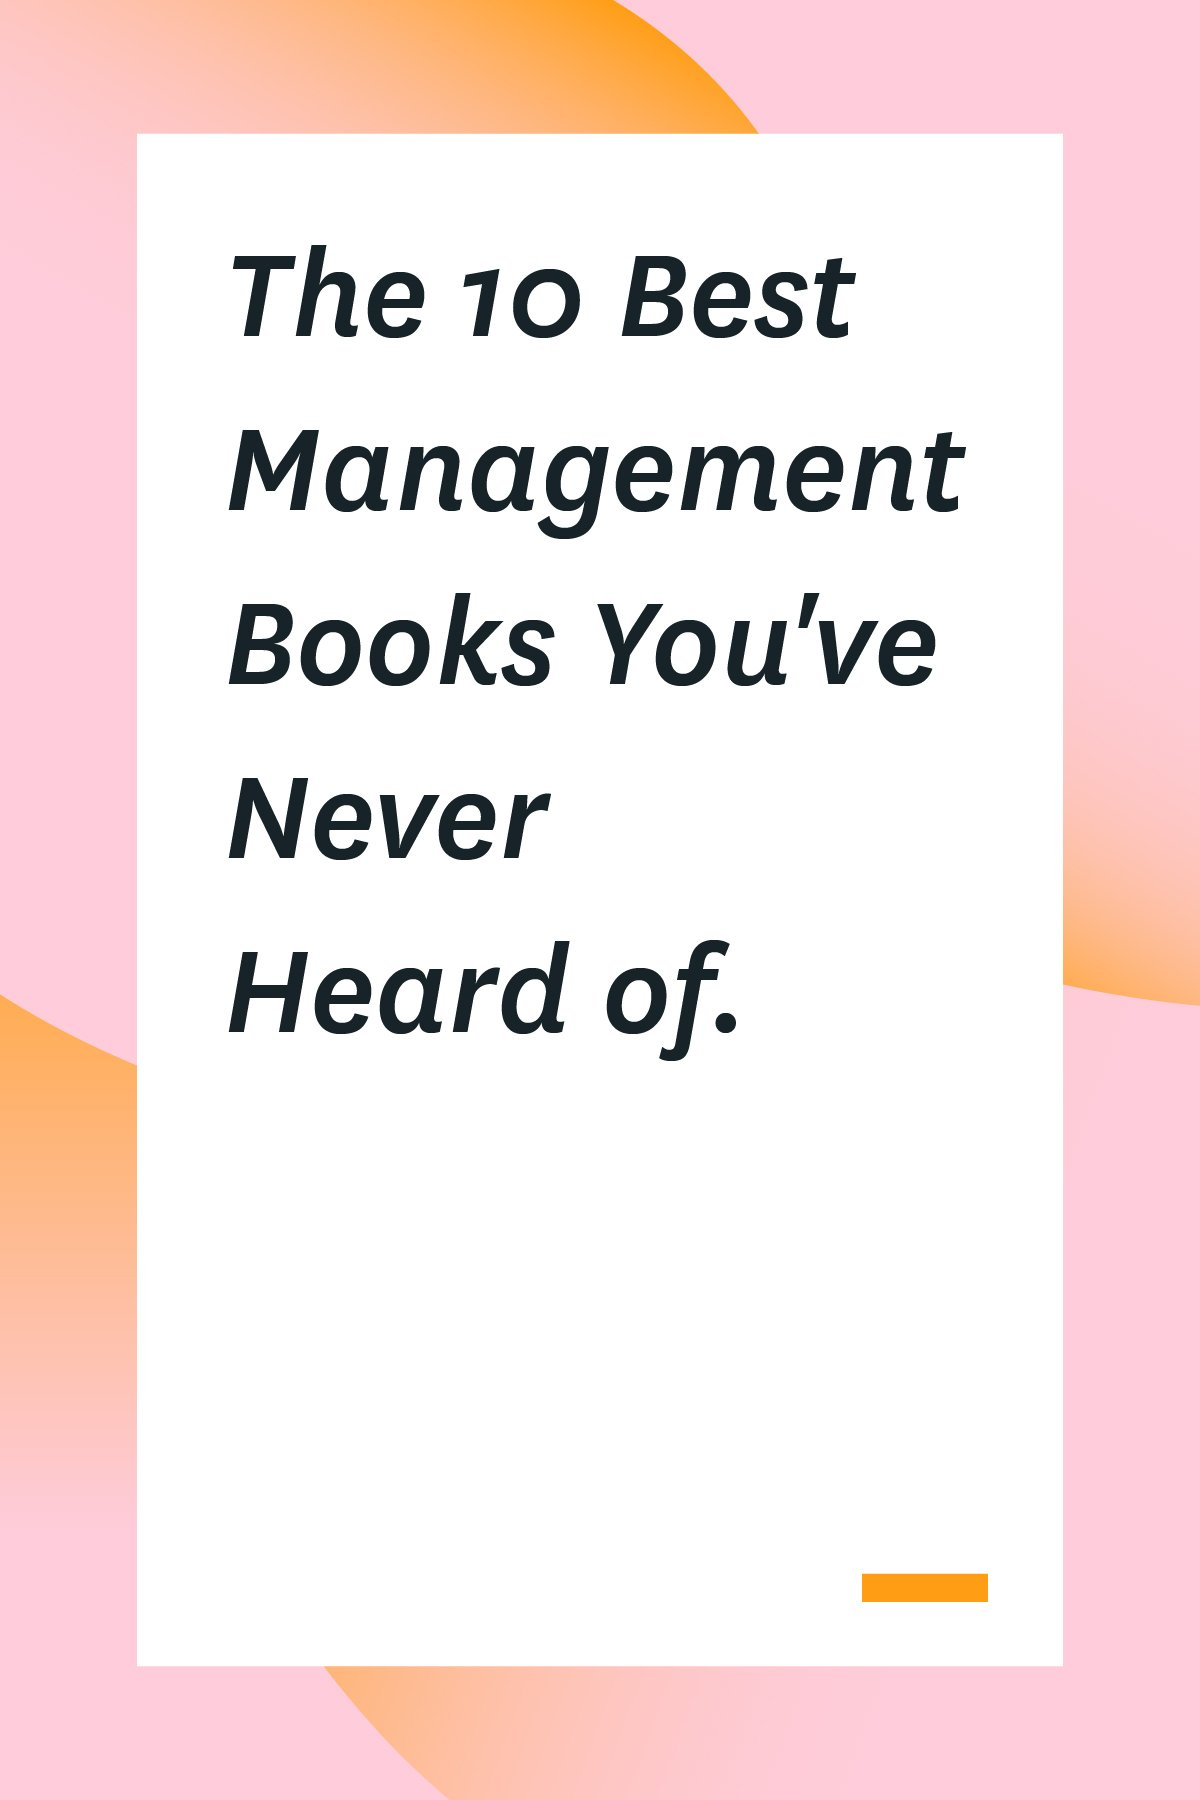 These project management books will give you unique tactics to boost your productivity and guide your team to greater success. #projectmanagement